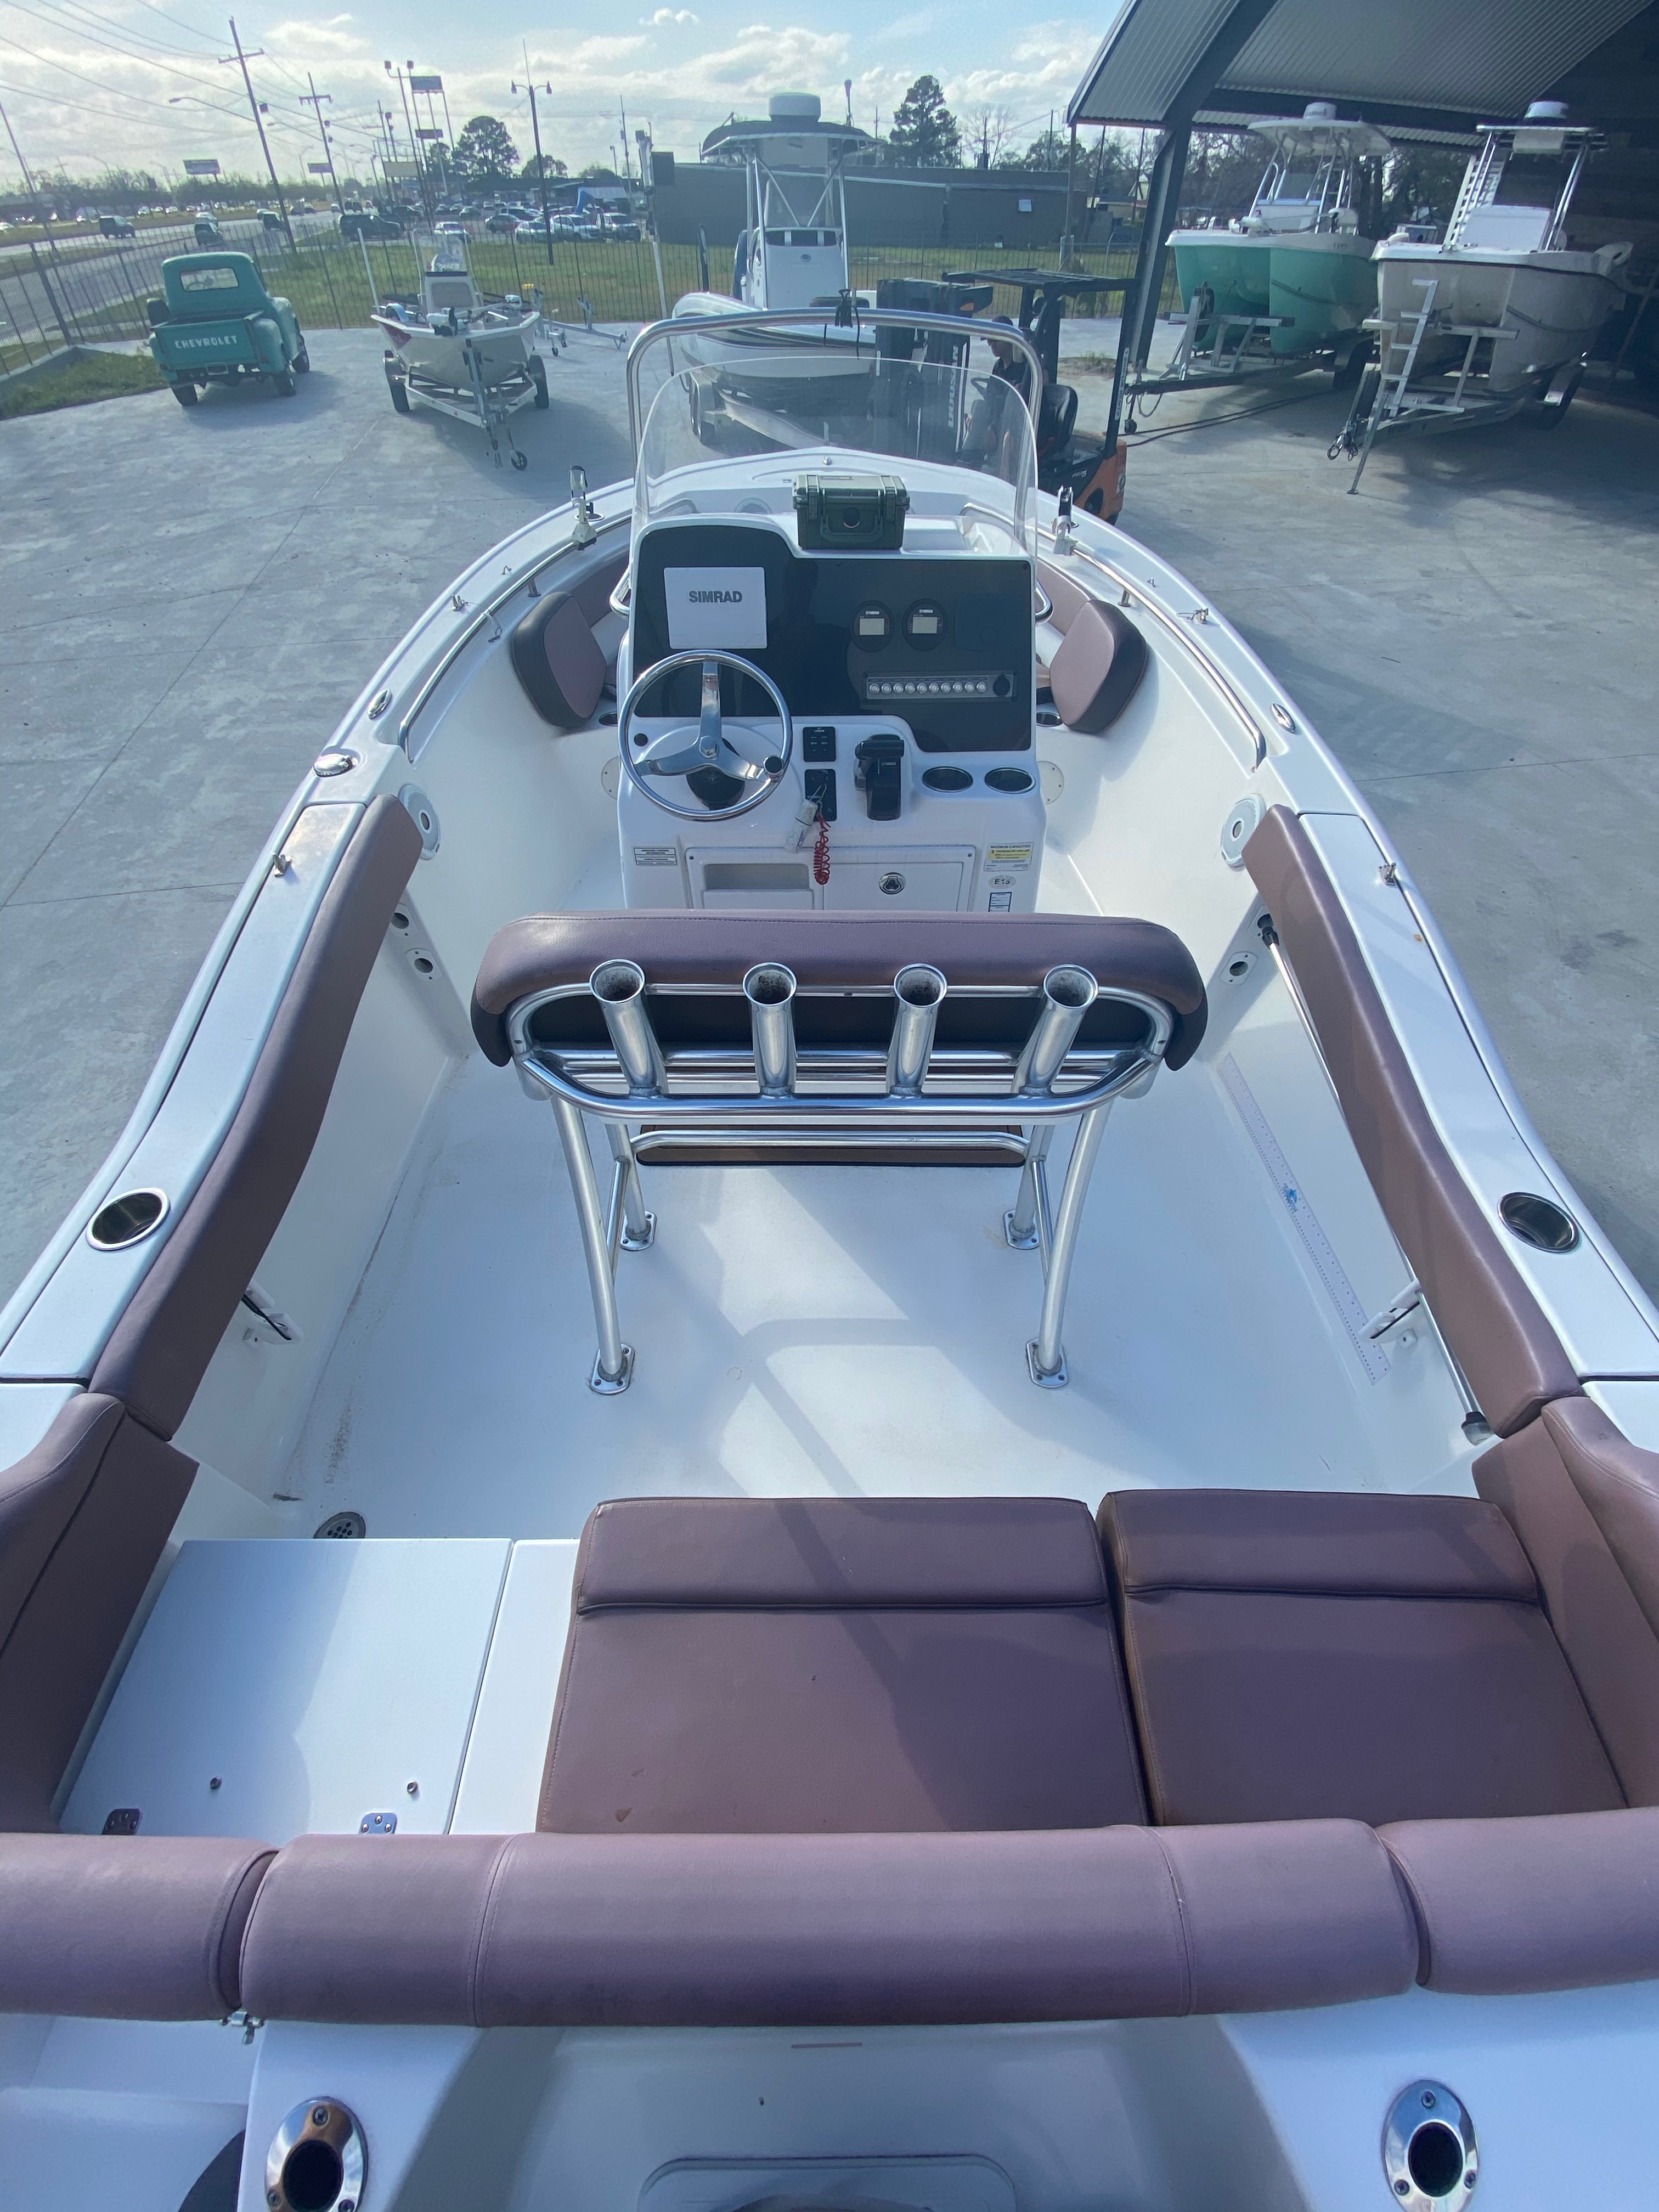 2017 Tidewater boat for sale, model of the boat is 210 & Image # 16 of 19